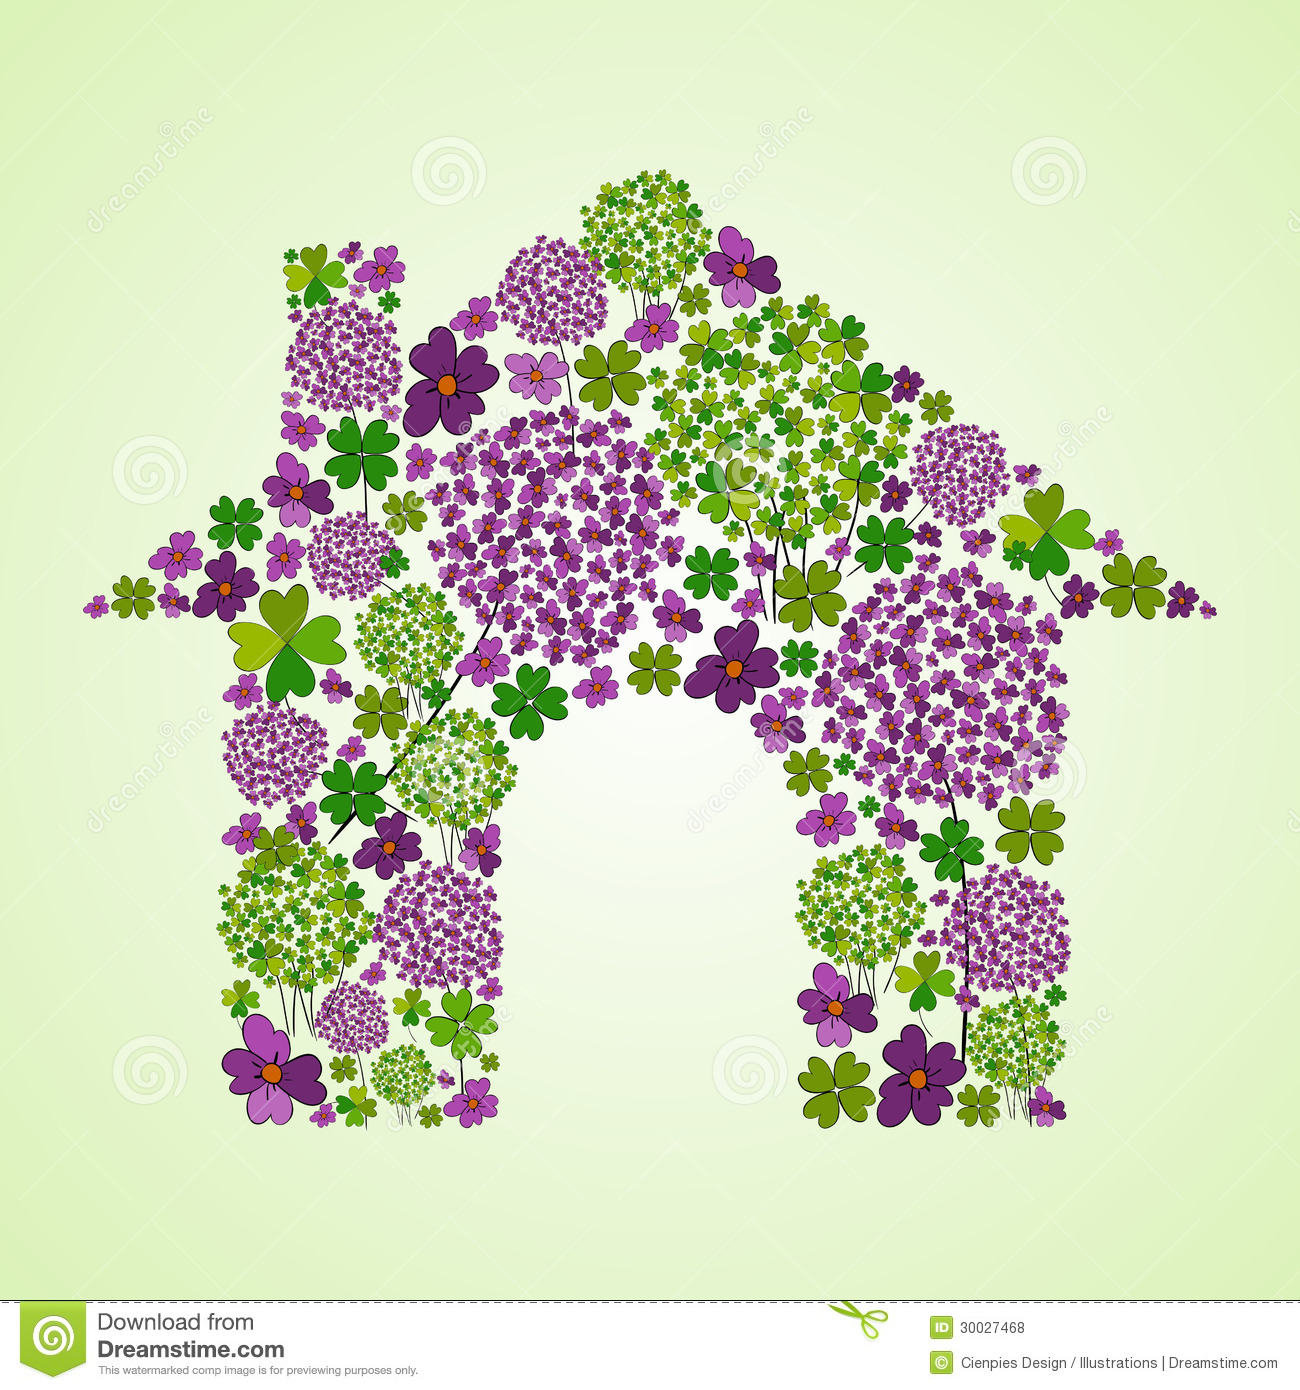 Colorful spring flower icons texture in green house icon shape    Real Flower Icons